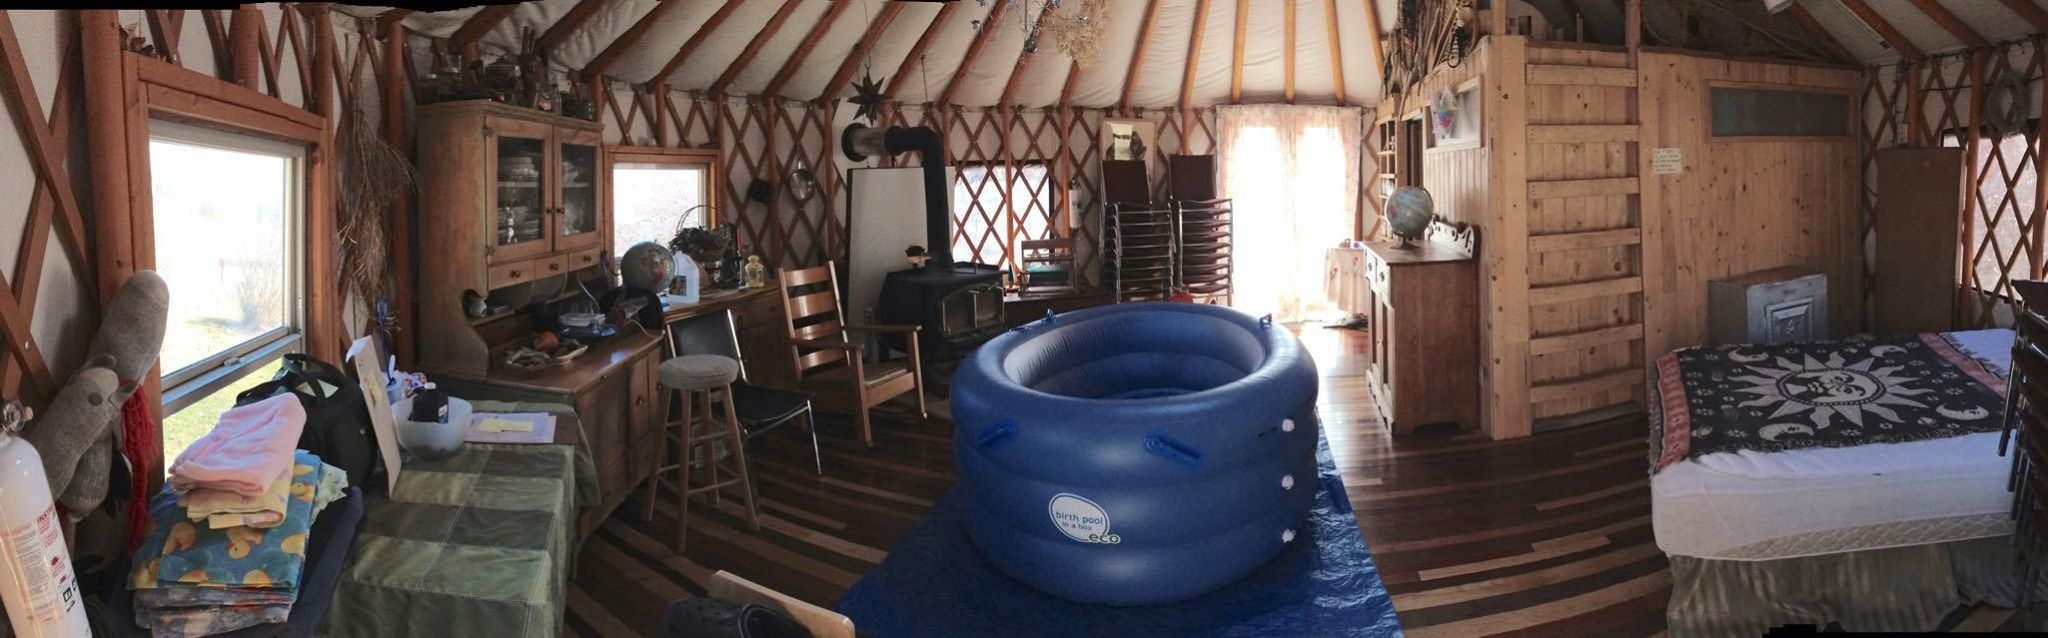 Yurtbirth The Offbeat Doula Yurt sounds like it could go into the word idiot (idiyurt). the offbeat doula